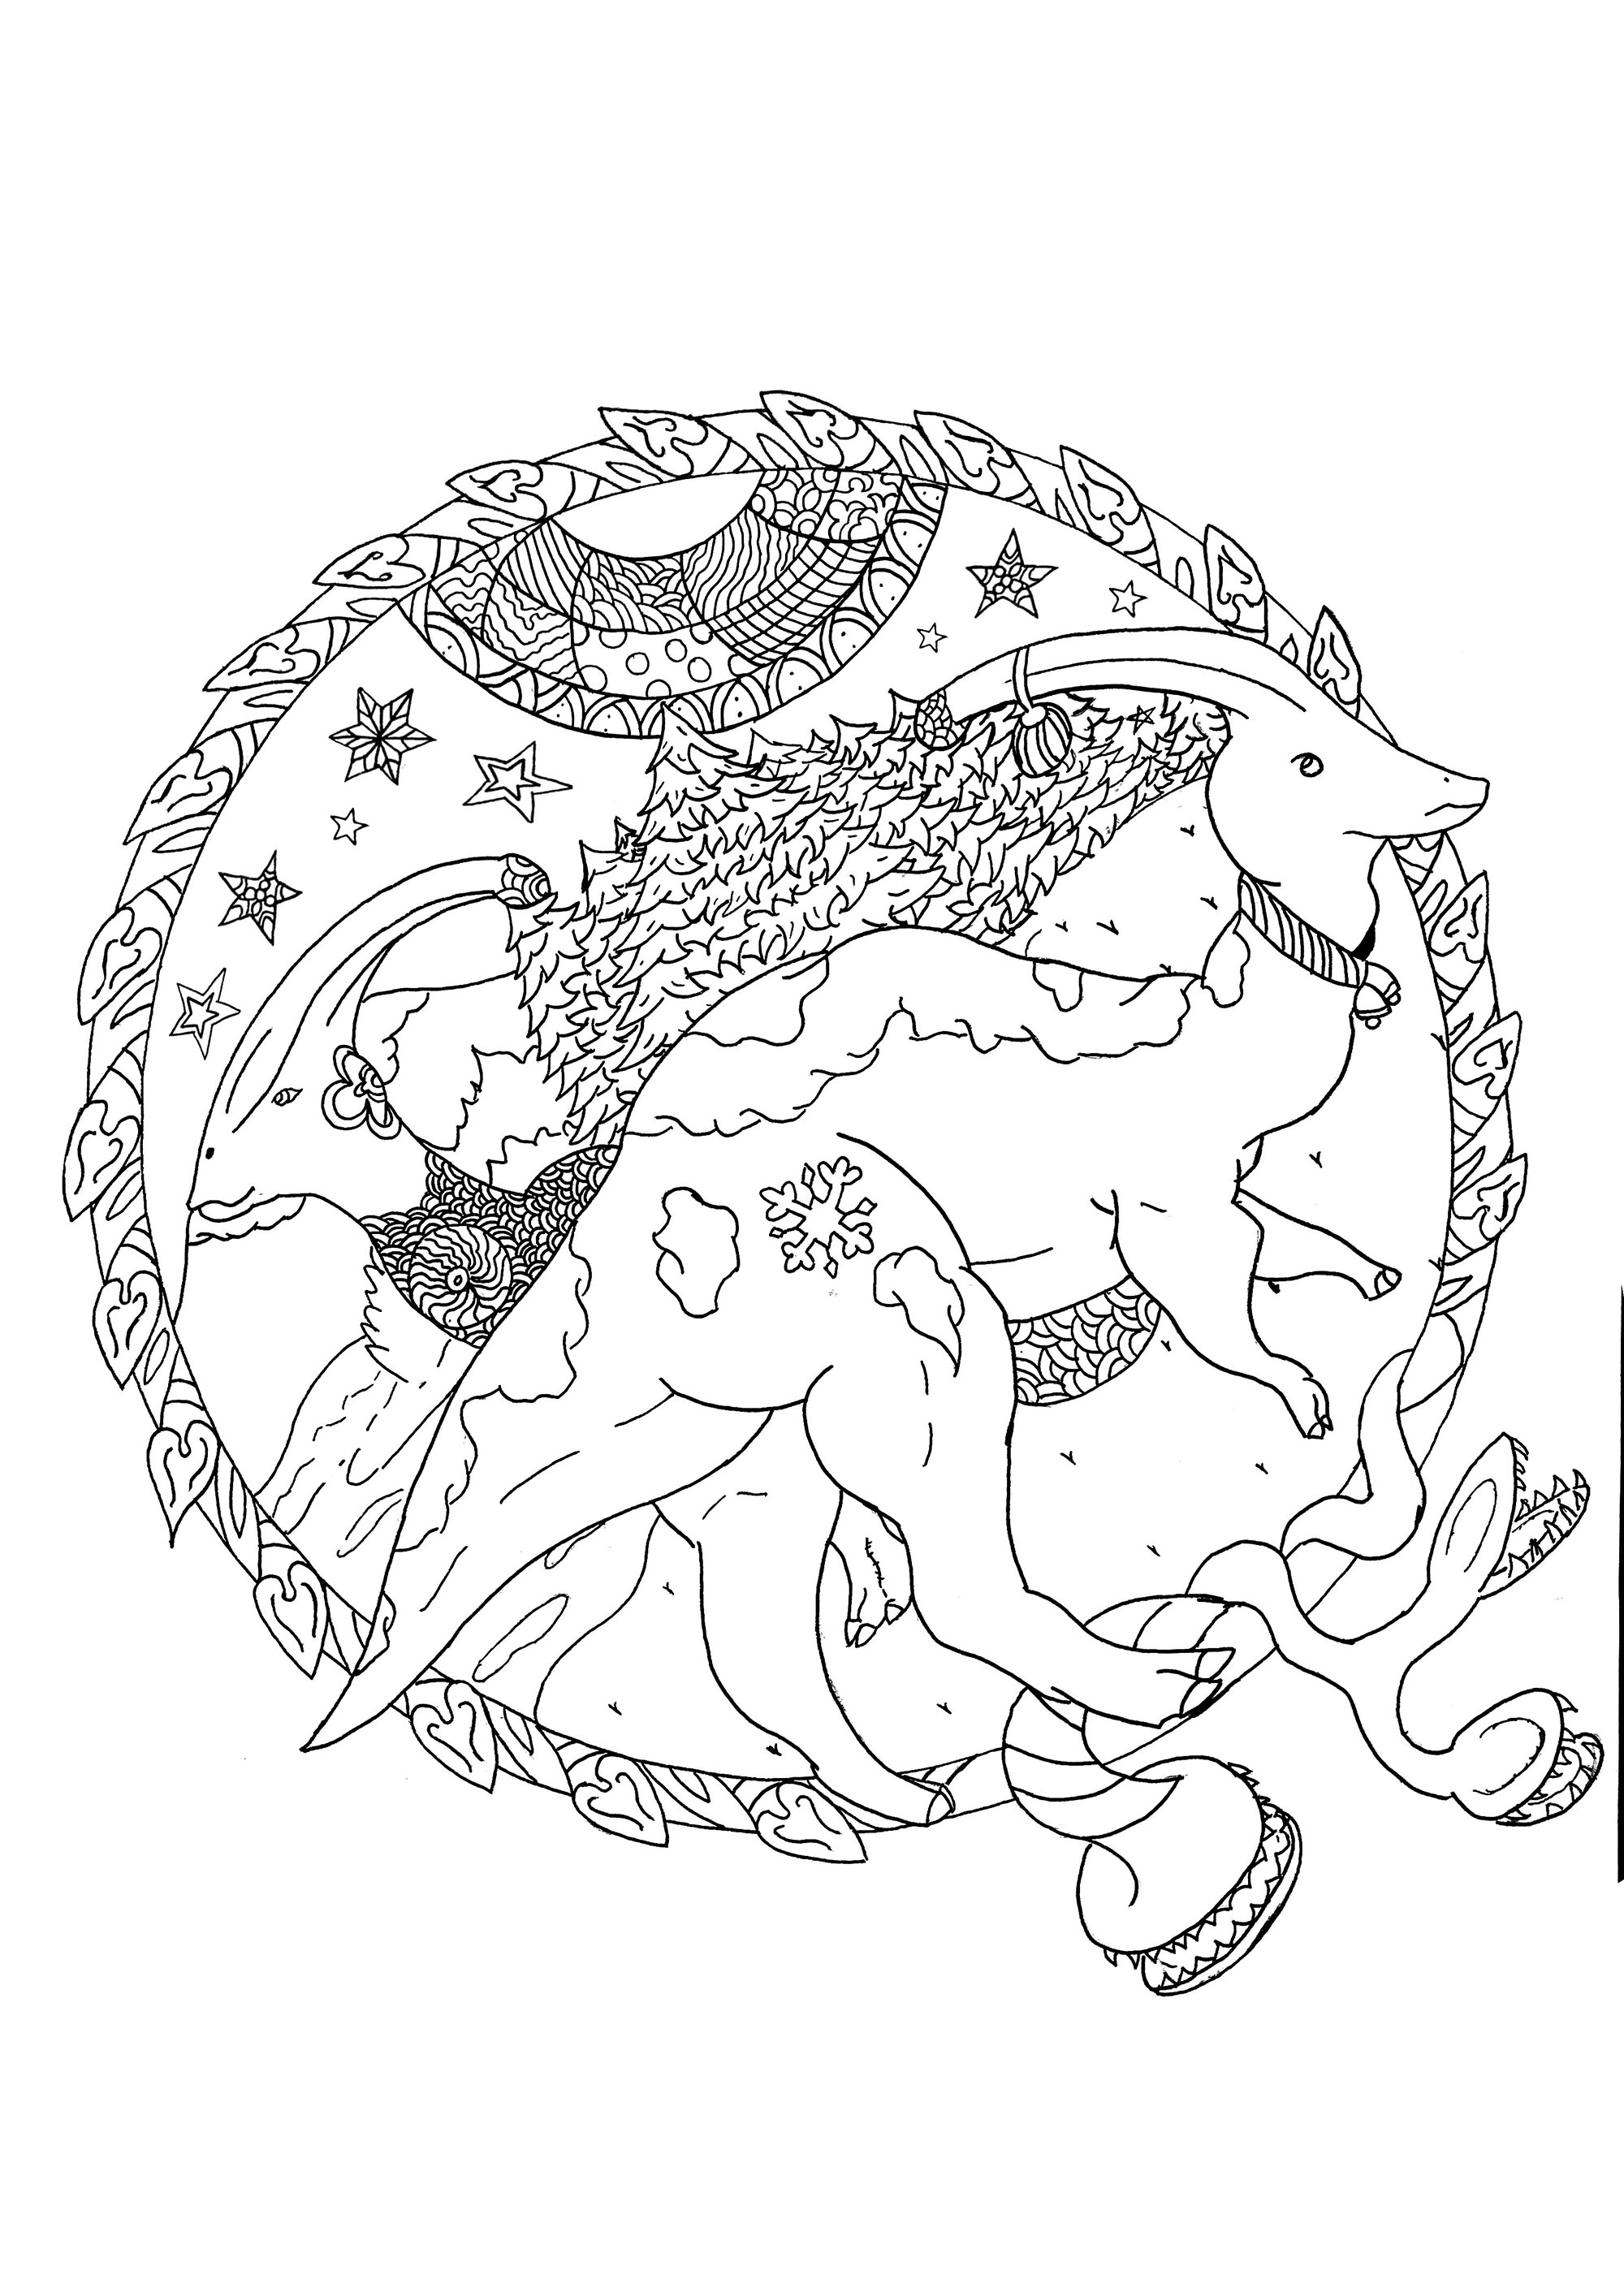 Christmas Dinosaur Coloring Pages : christmas, dinosaur, coloring, pages, Christmas, Dinosaurs, Adult, Coloring, Pages